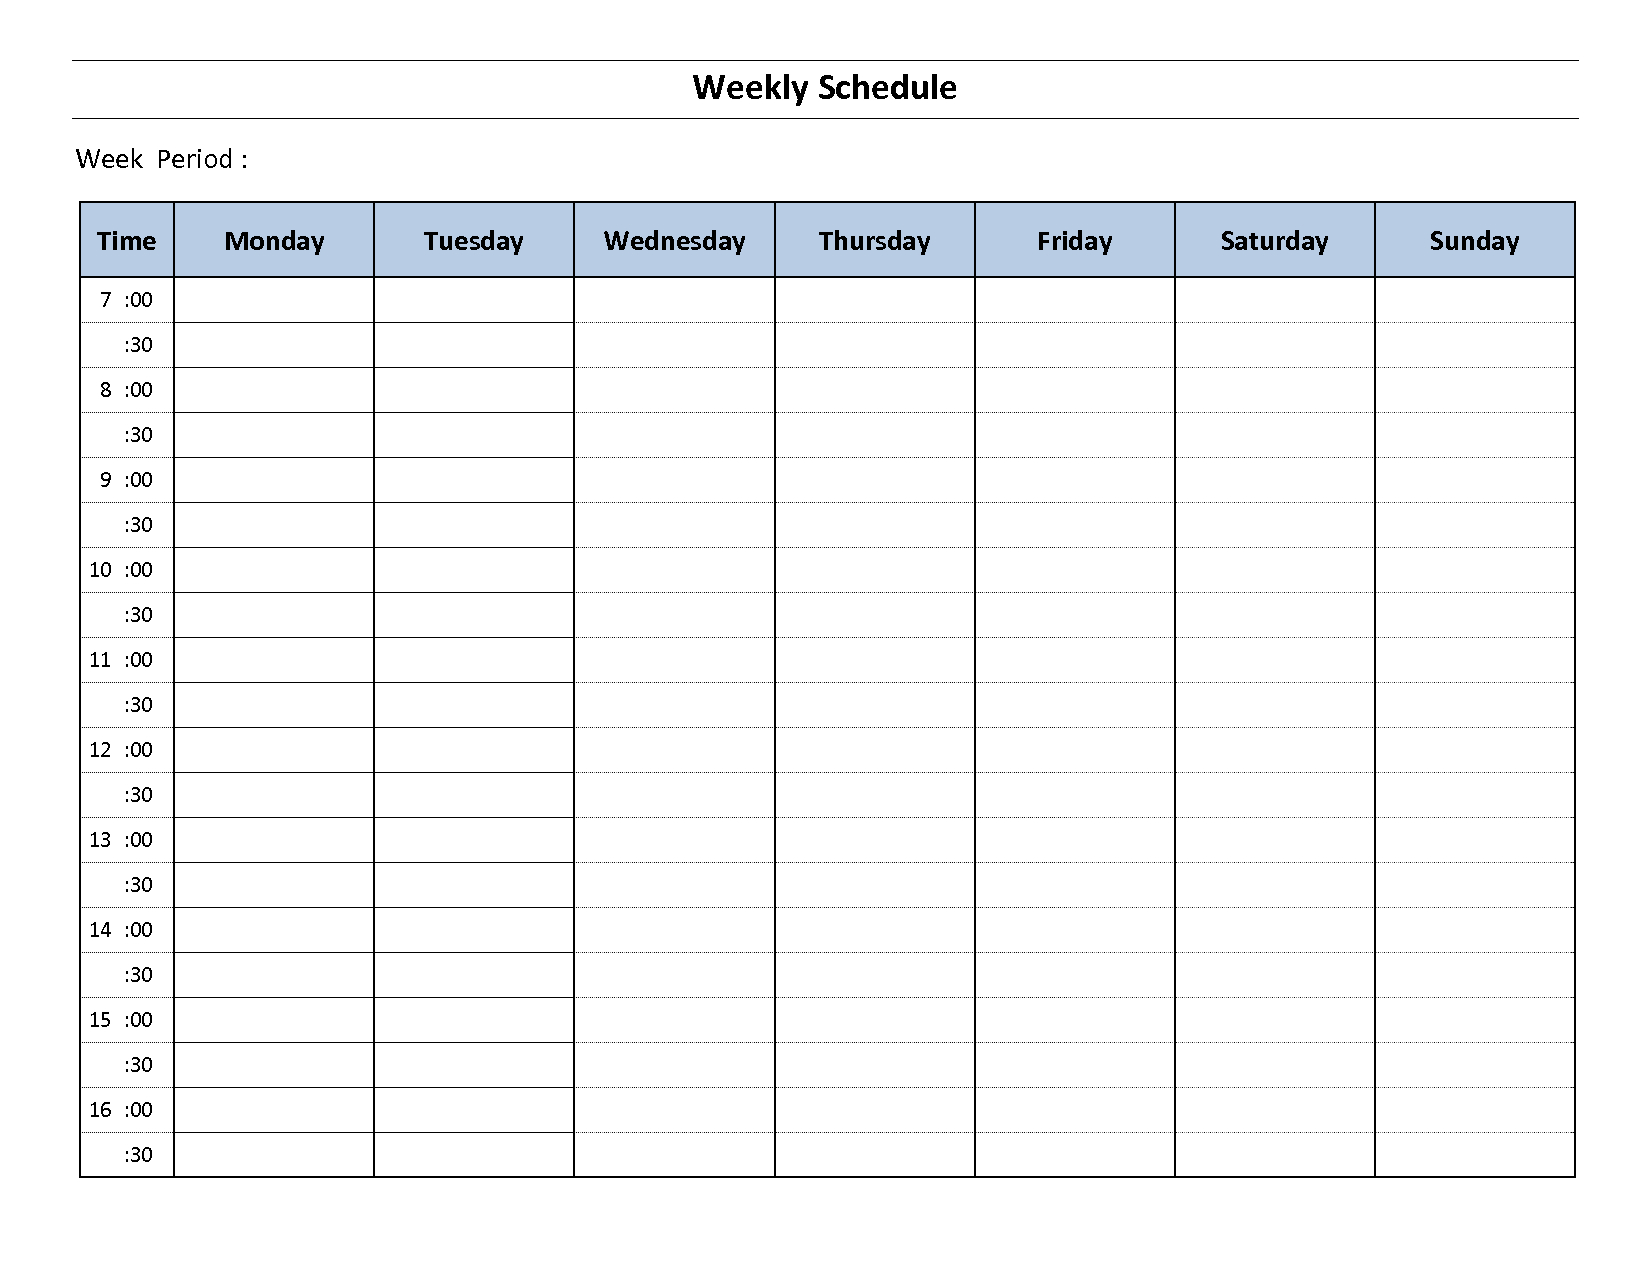 Microsoft Word Weekly Le Template Blank Calendar Free Printable in Free Printable Weekly Calendar Templates